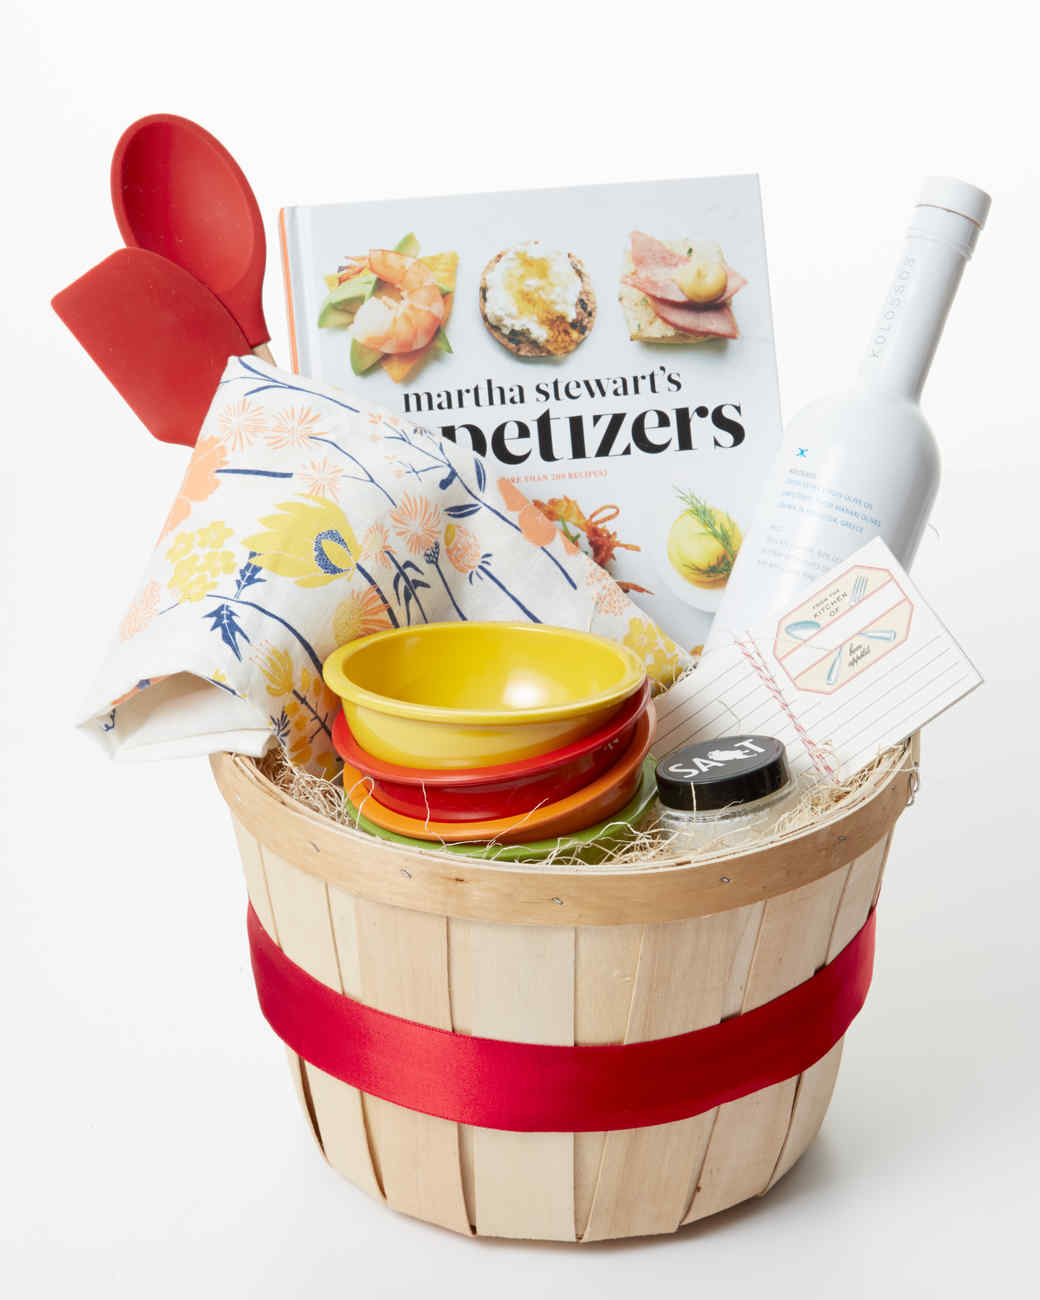 Easter baskets for adults 7 handy easter basket ideas for the master chef martha stewart negle Images